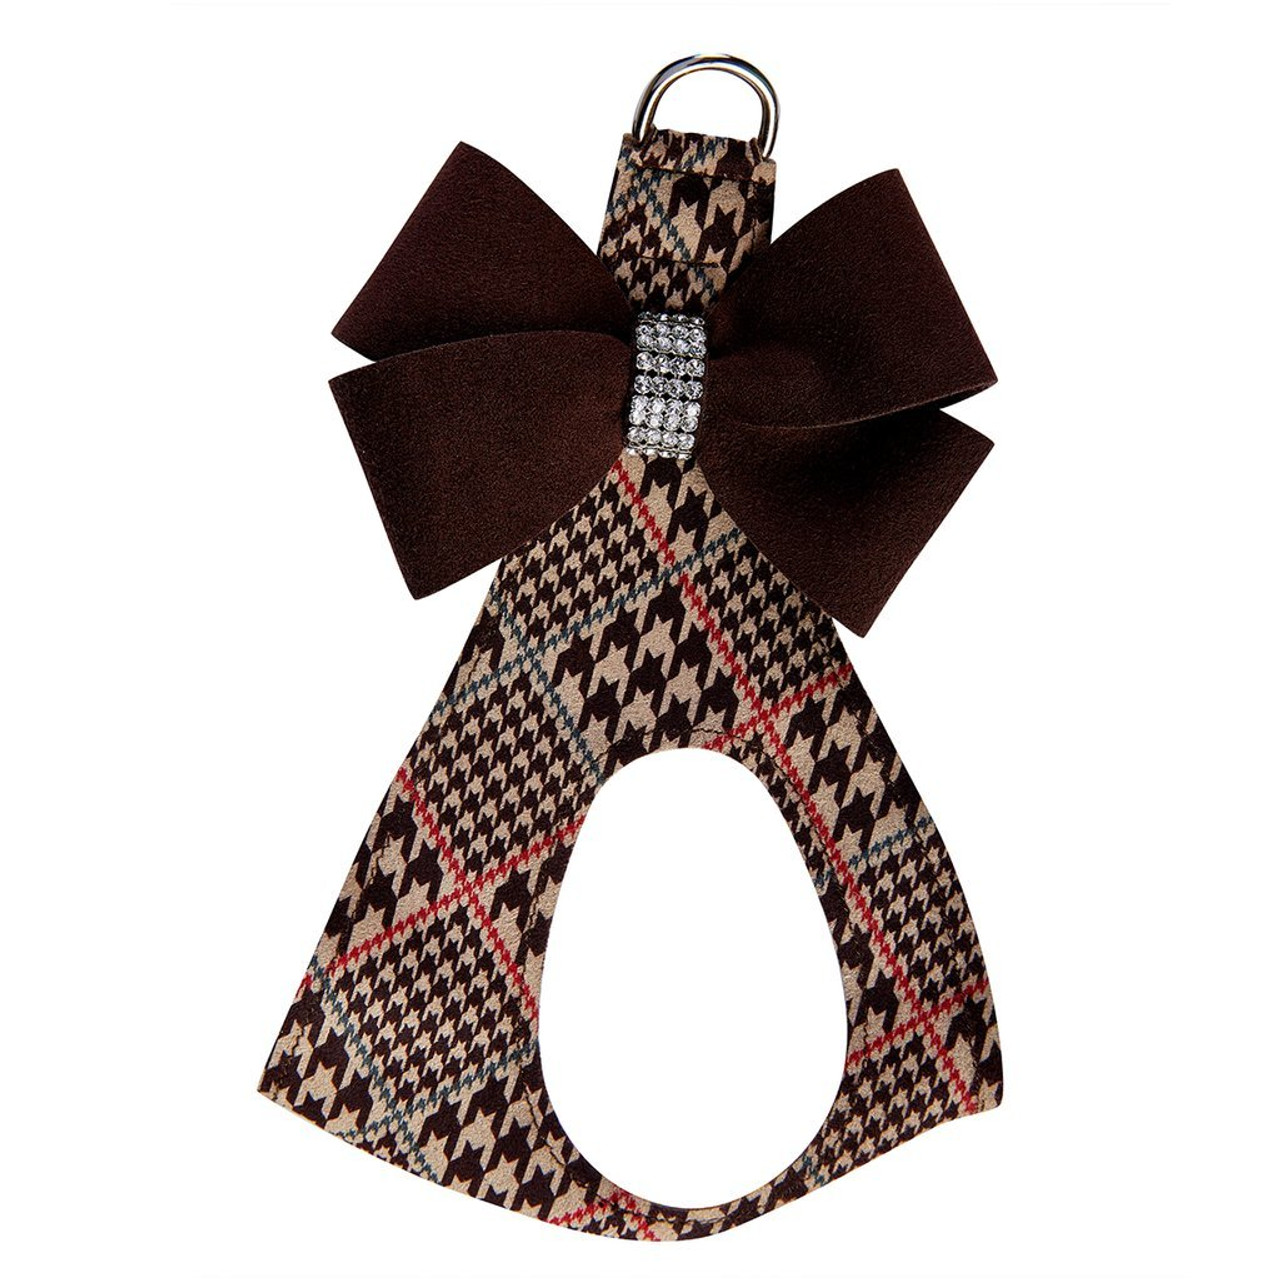 Glen Houndstooth Collection - Chocolate